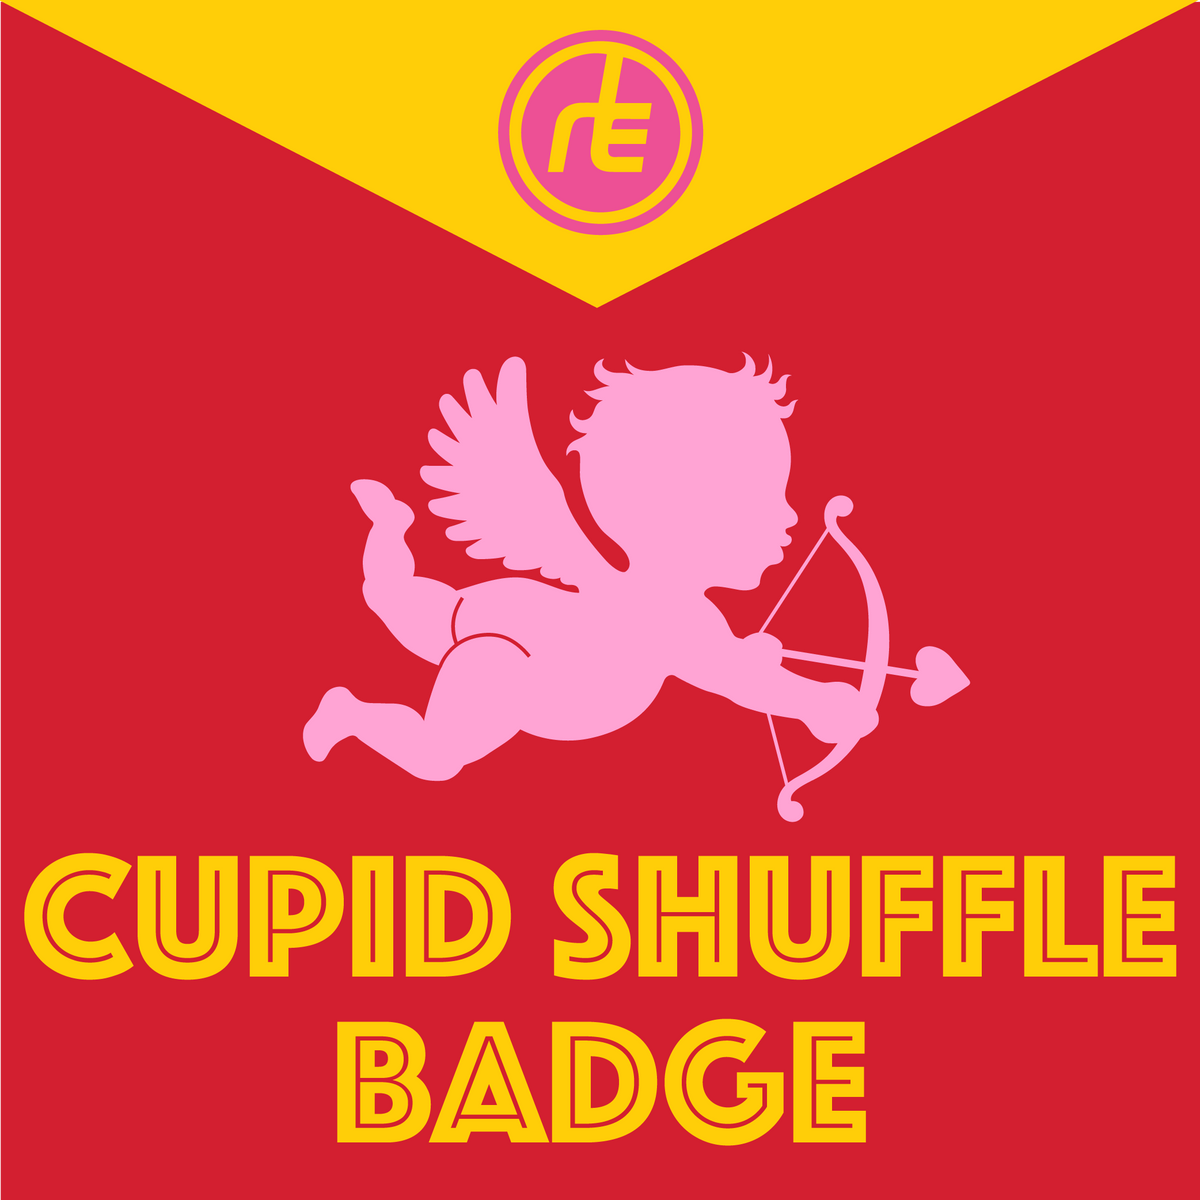 2020 Cupid Streaker Challenge: (Registration PLUS Dog Tag)